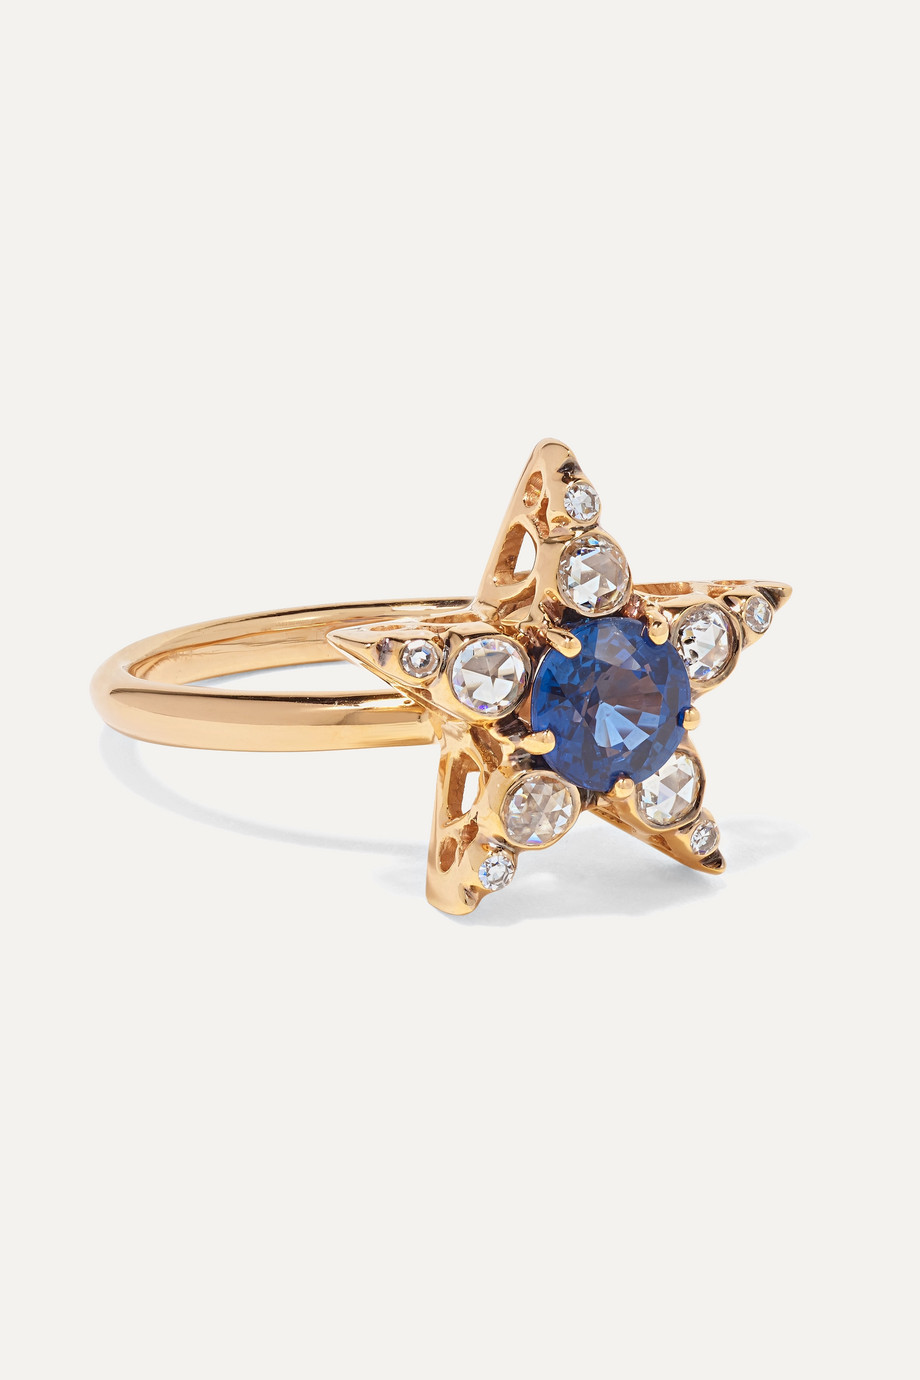 Selim Mouzannar Istanbul 18-karat rose gold, sapphire and diamond ring